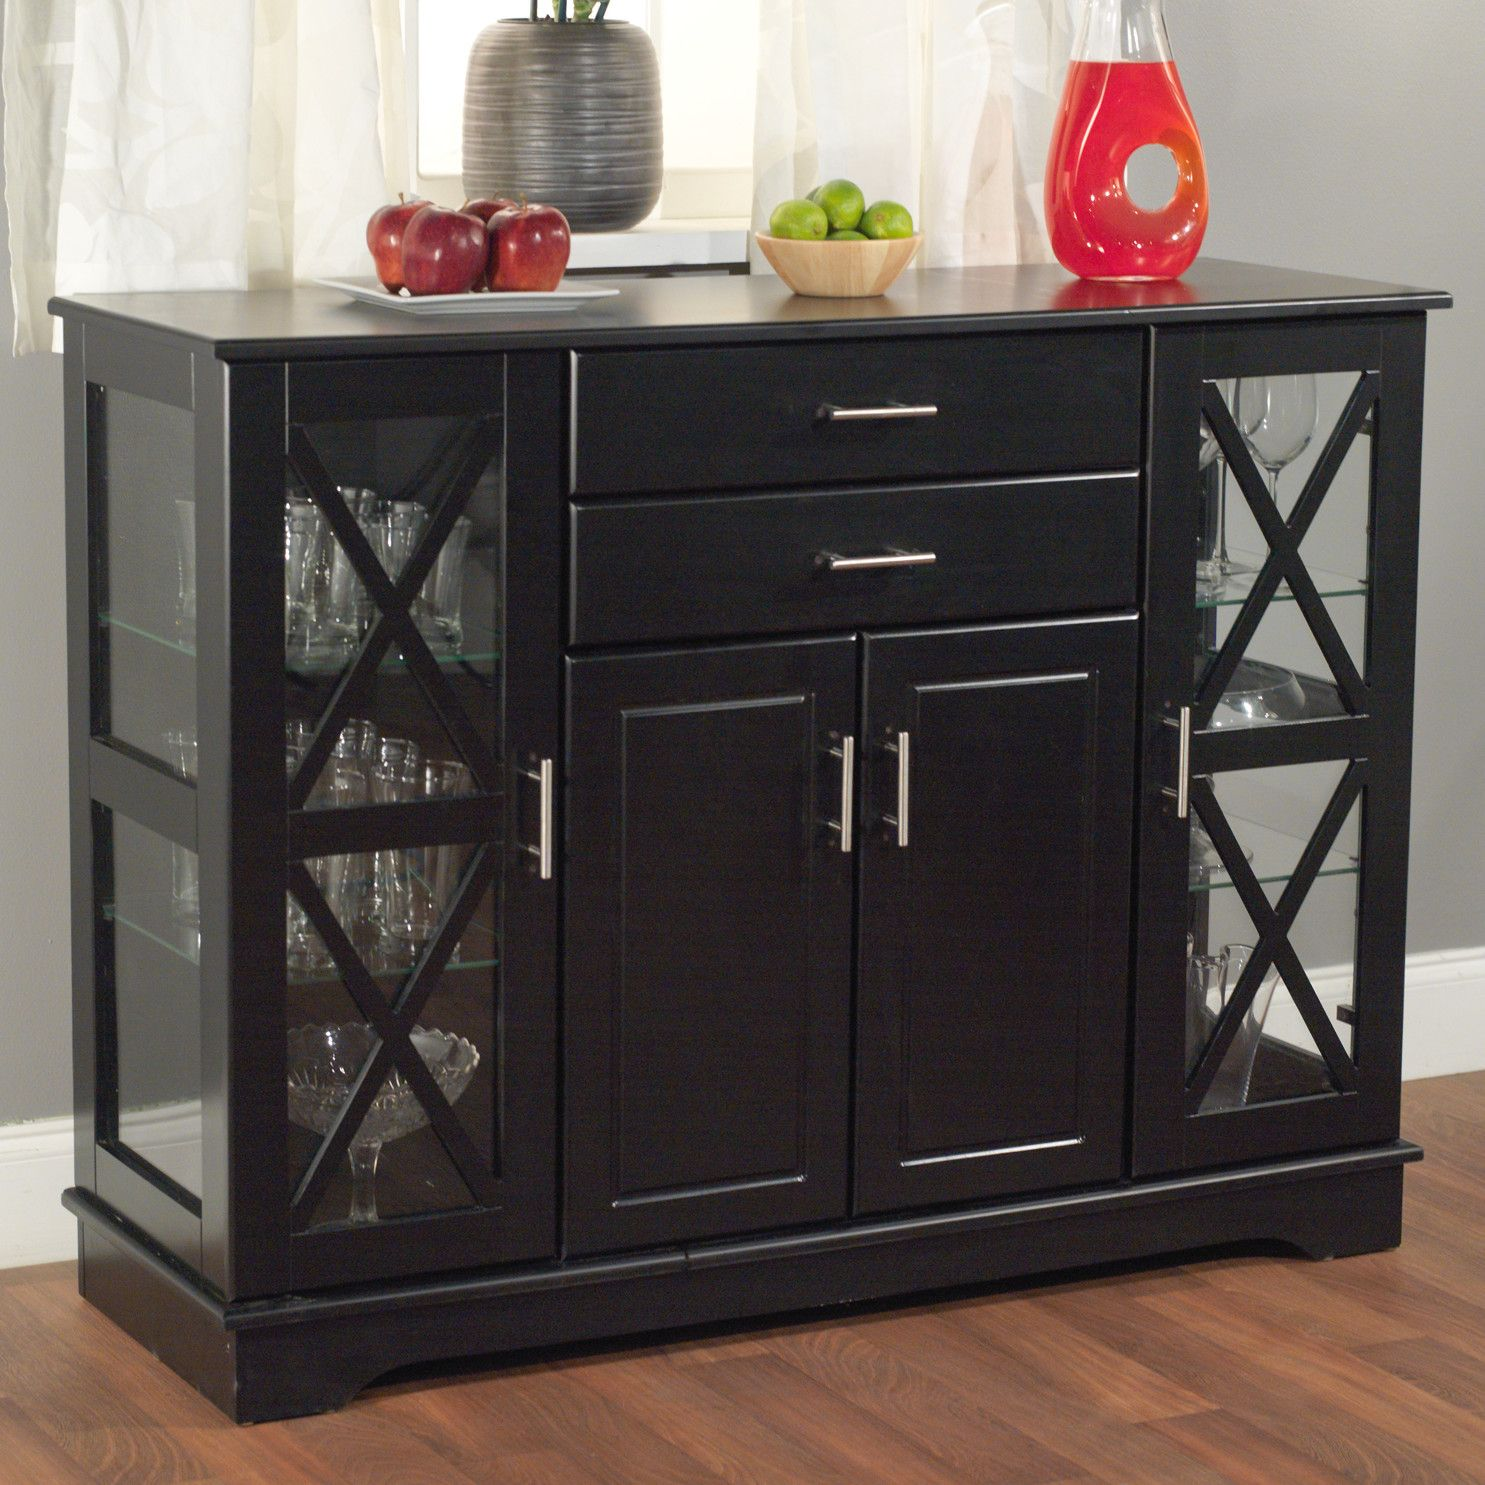 Black Wood Buffet Dining Room Sideboard With Glass Doors